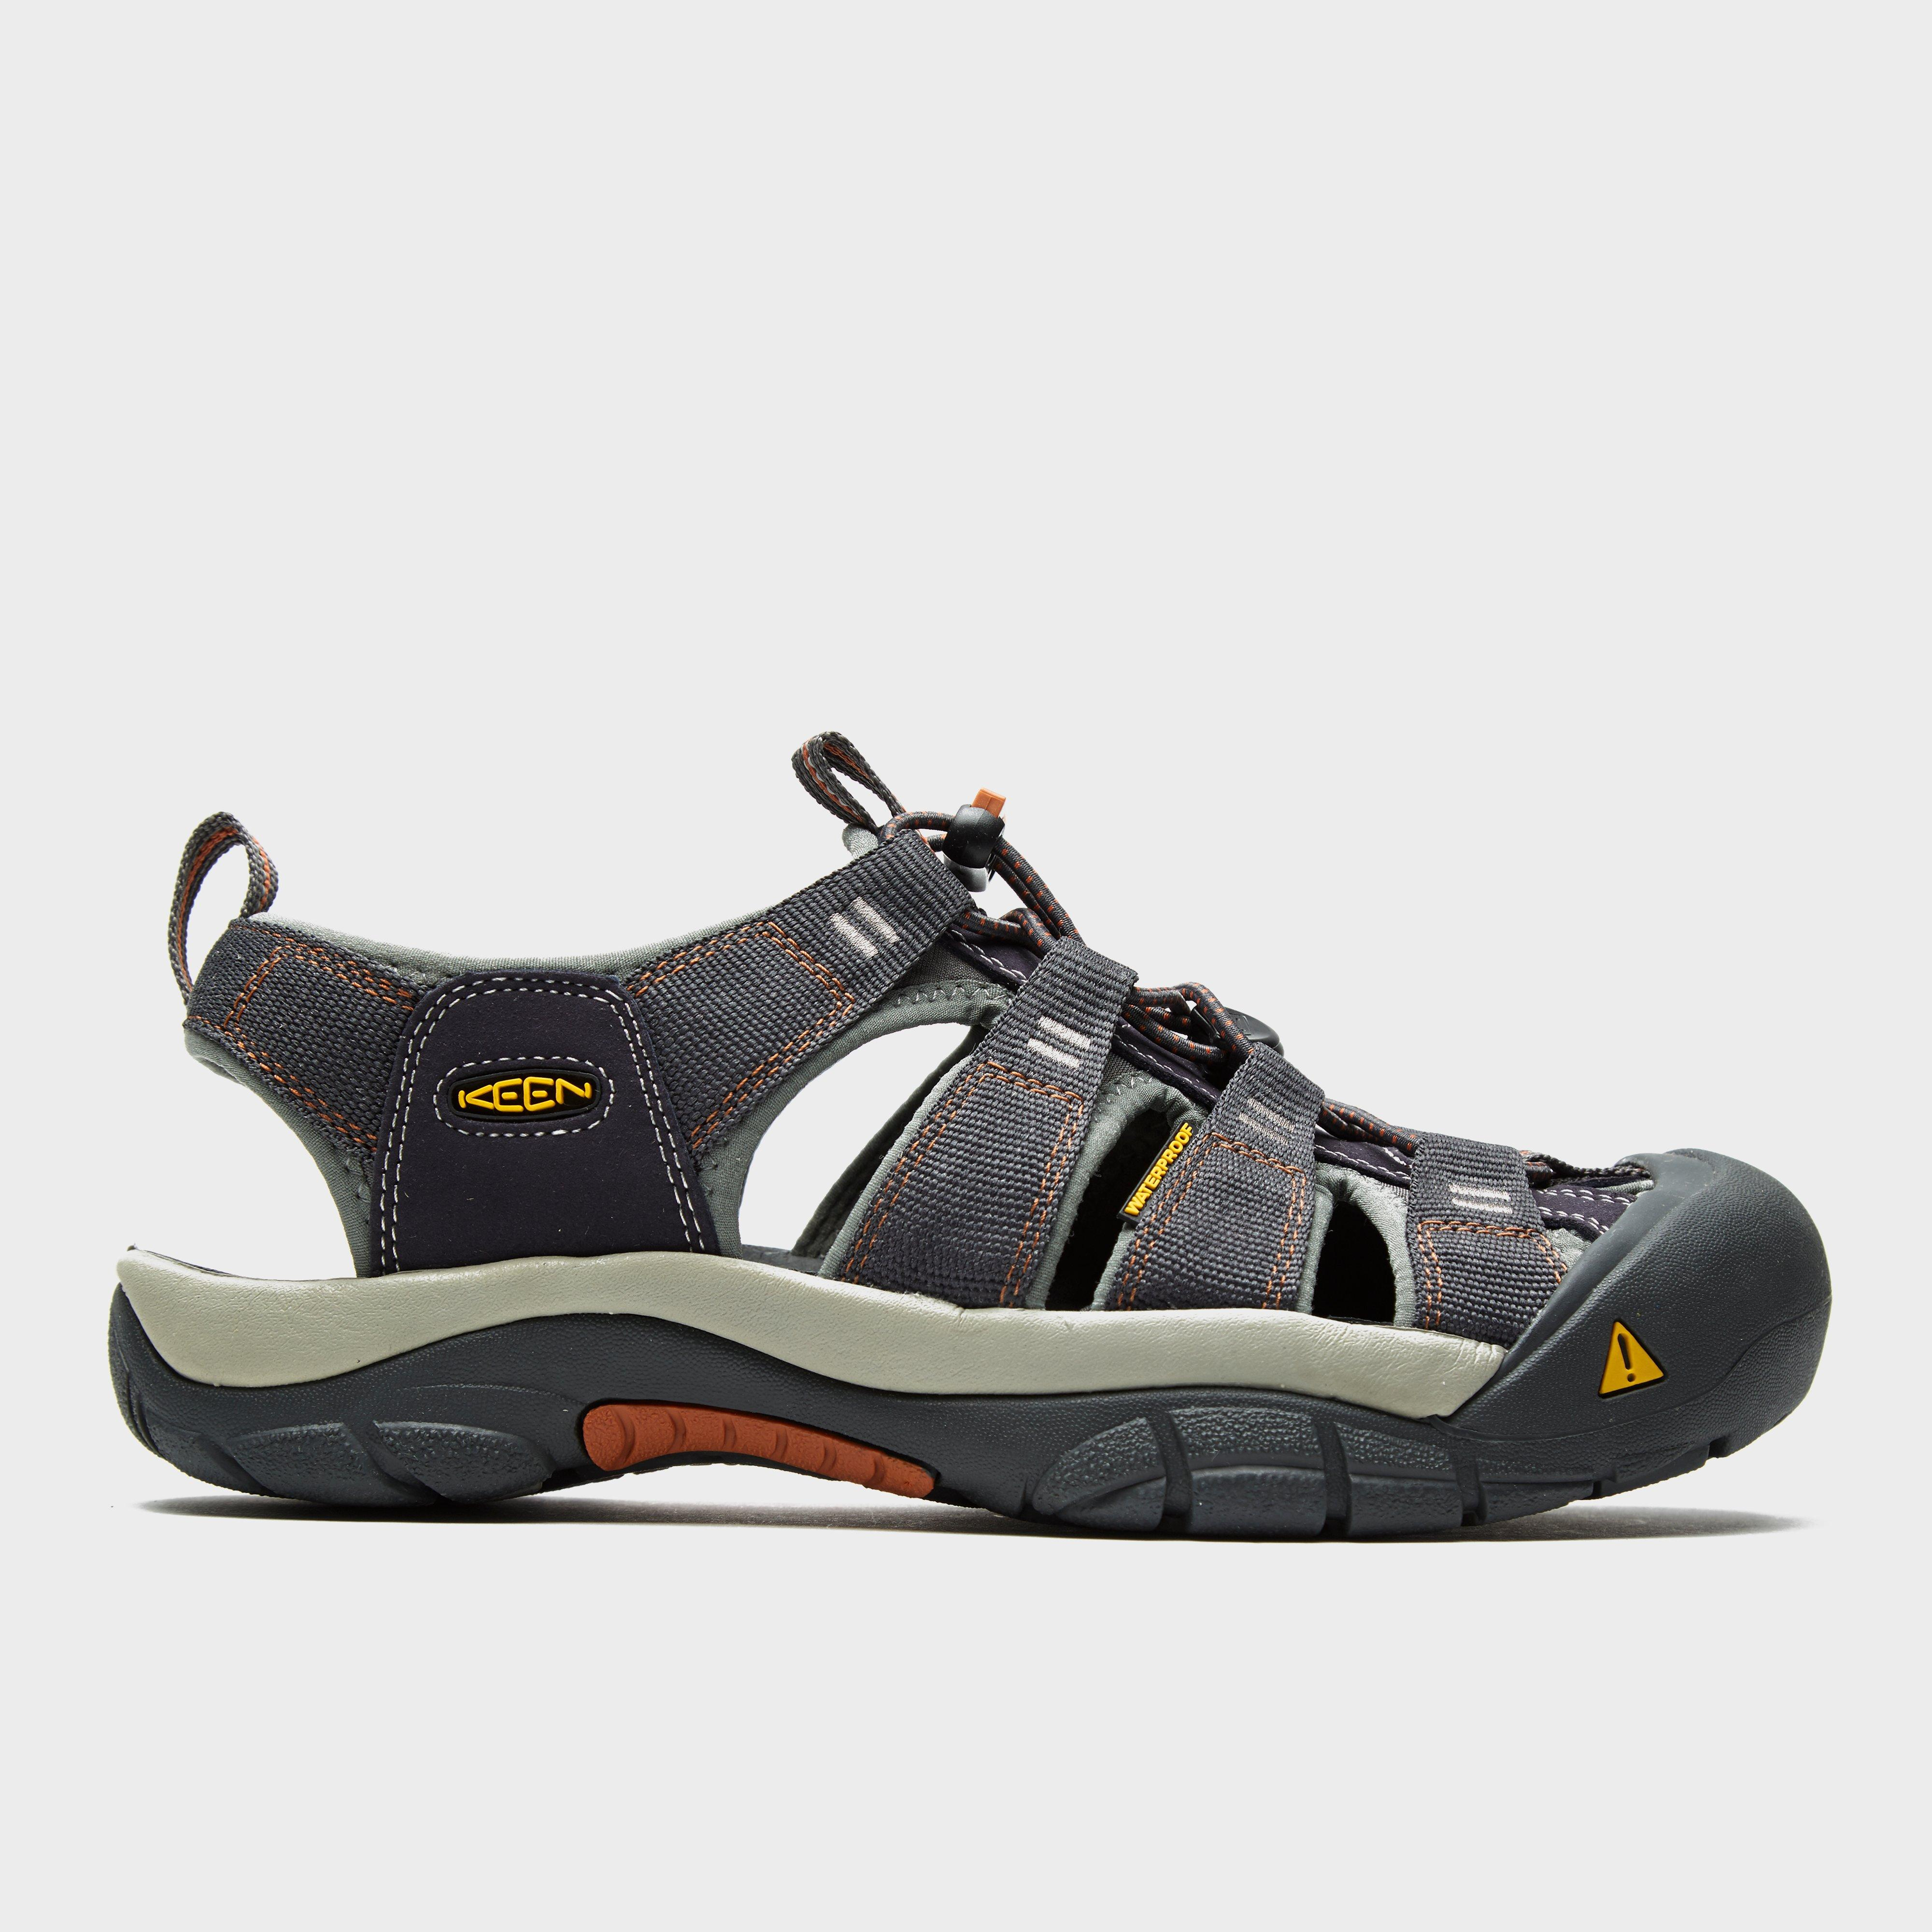 Keen Shoes Store Locator Uk